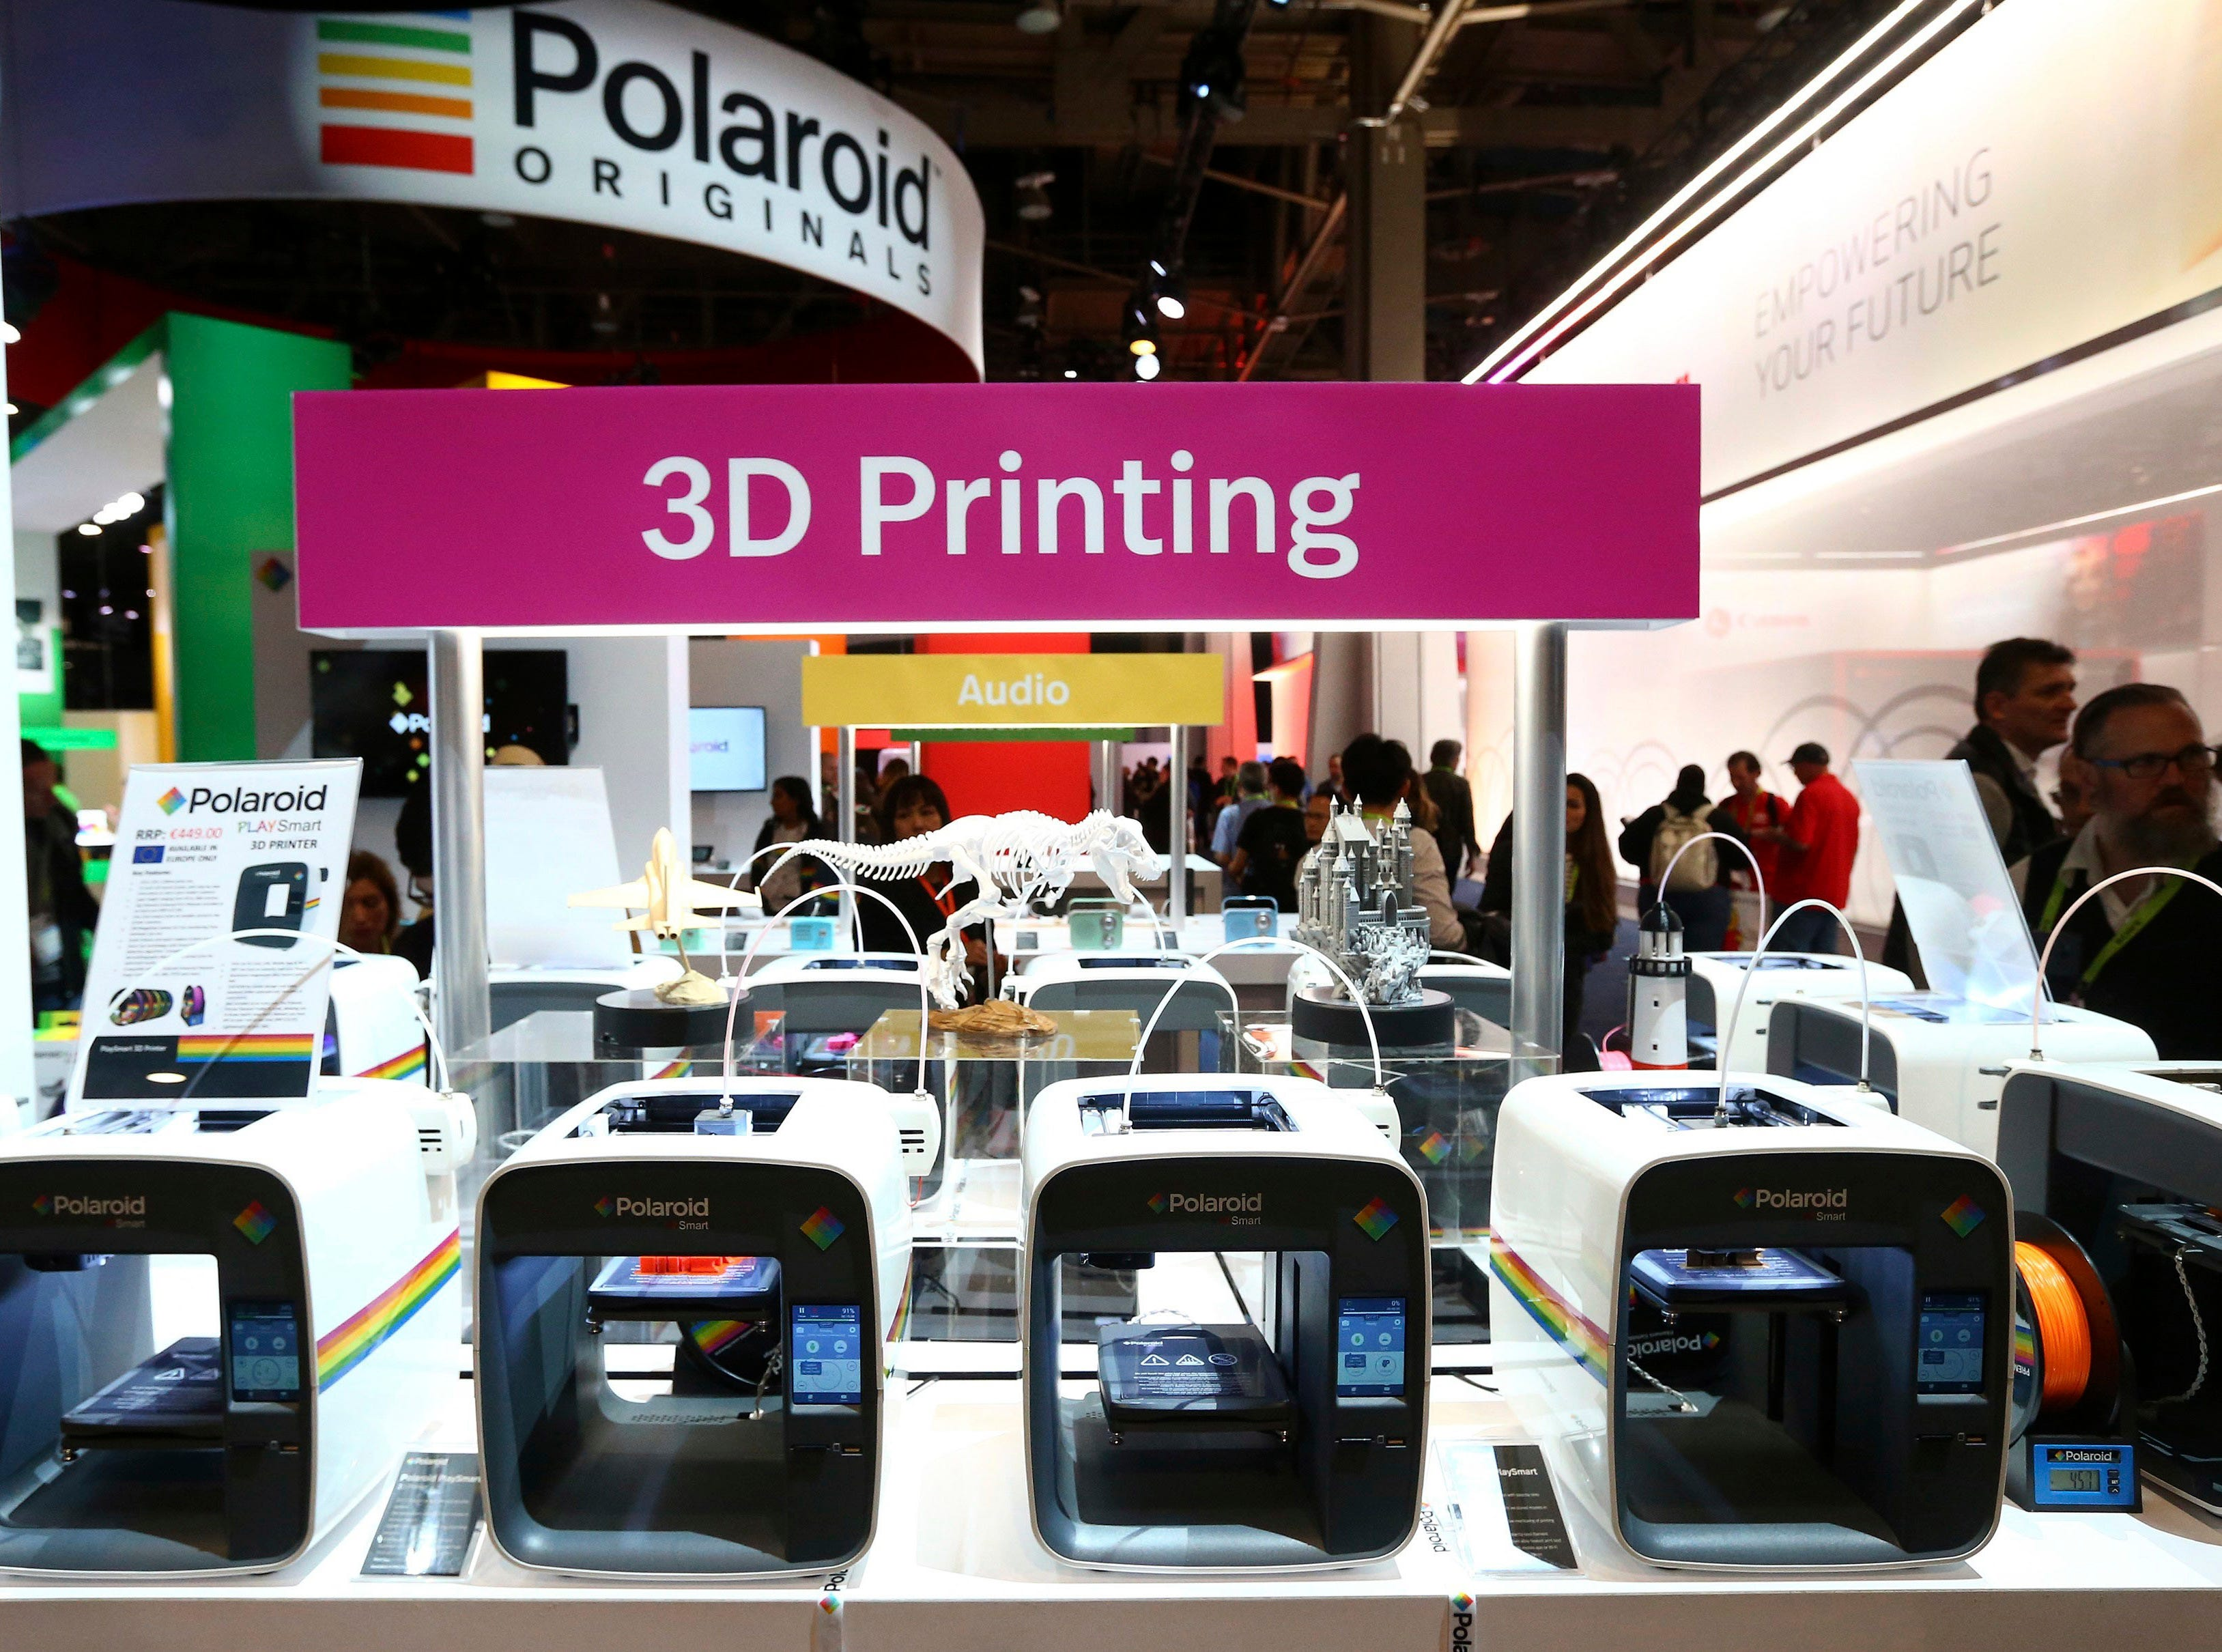 Polaroid shows off a variety of 3D printers at CES International on Wednesday, Jan. 9, 2019, in Las Vegas.